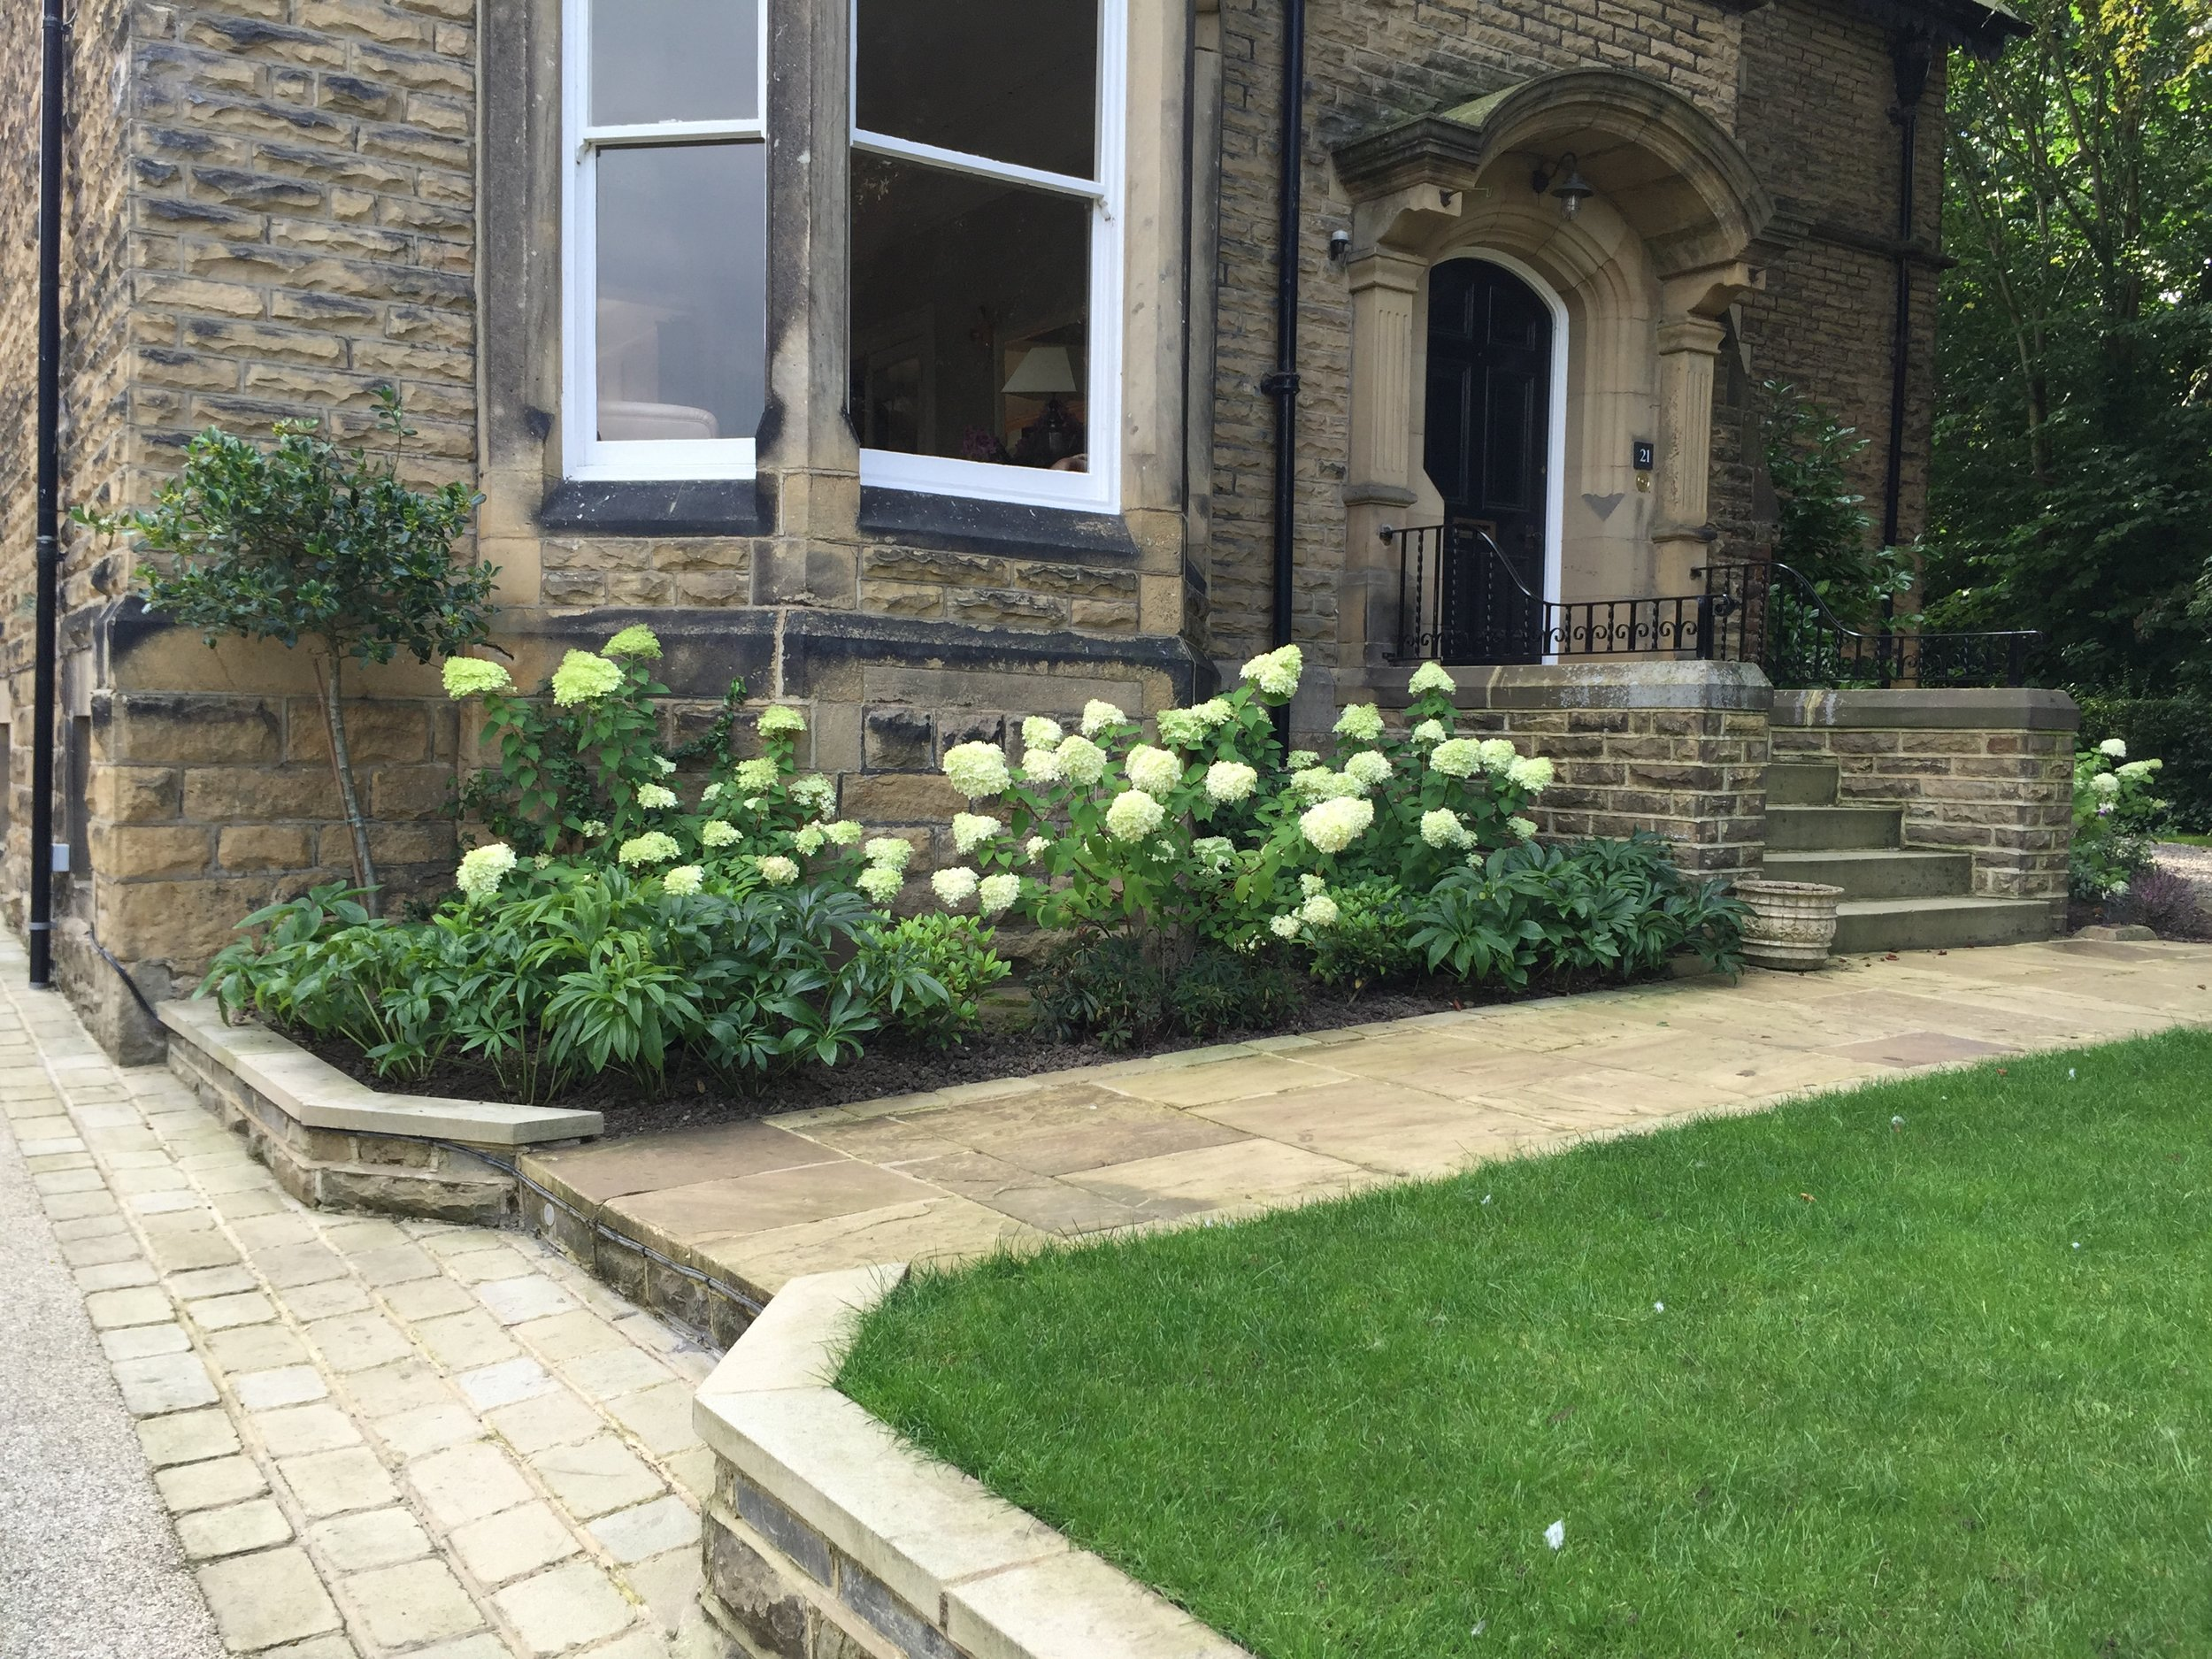 Large bay window anchored with planting - Hydrangea Limelight with an edging of white and dark hellebores